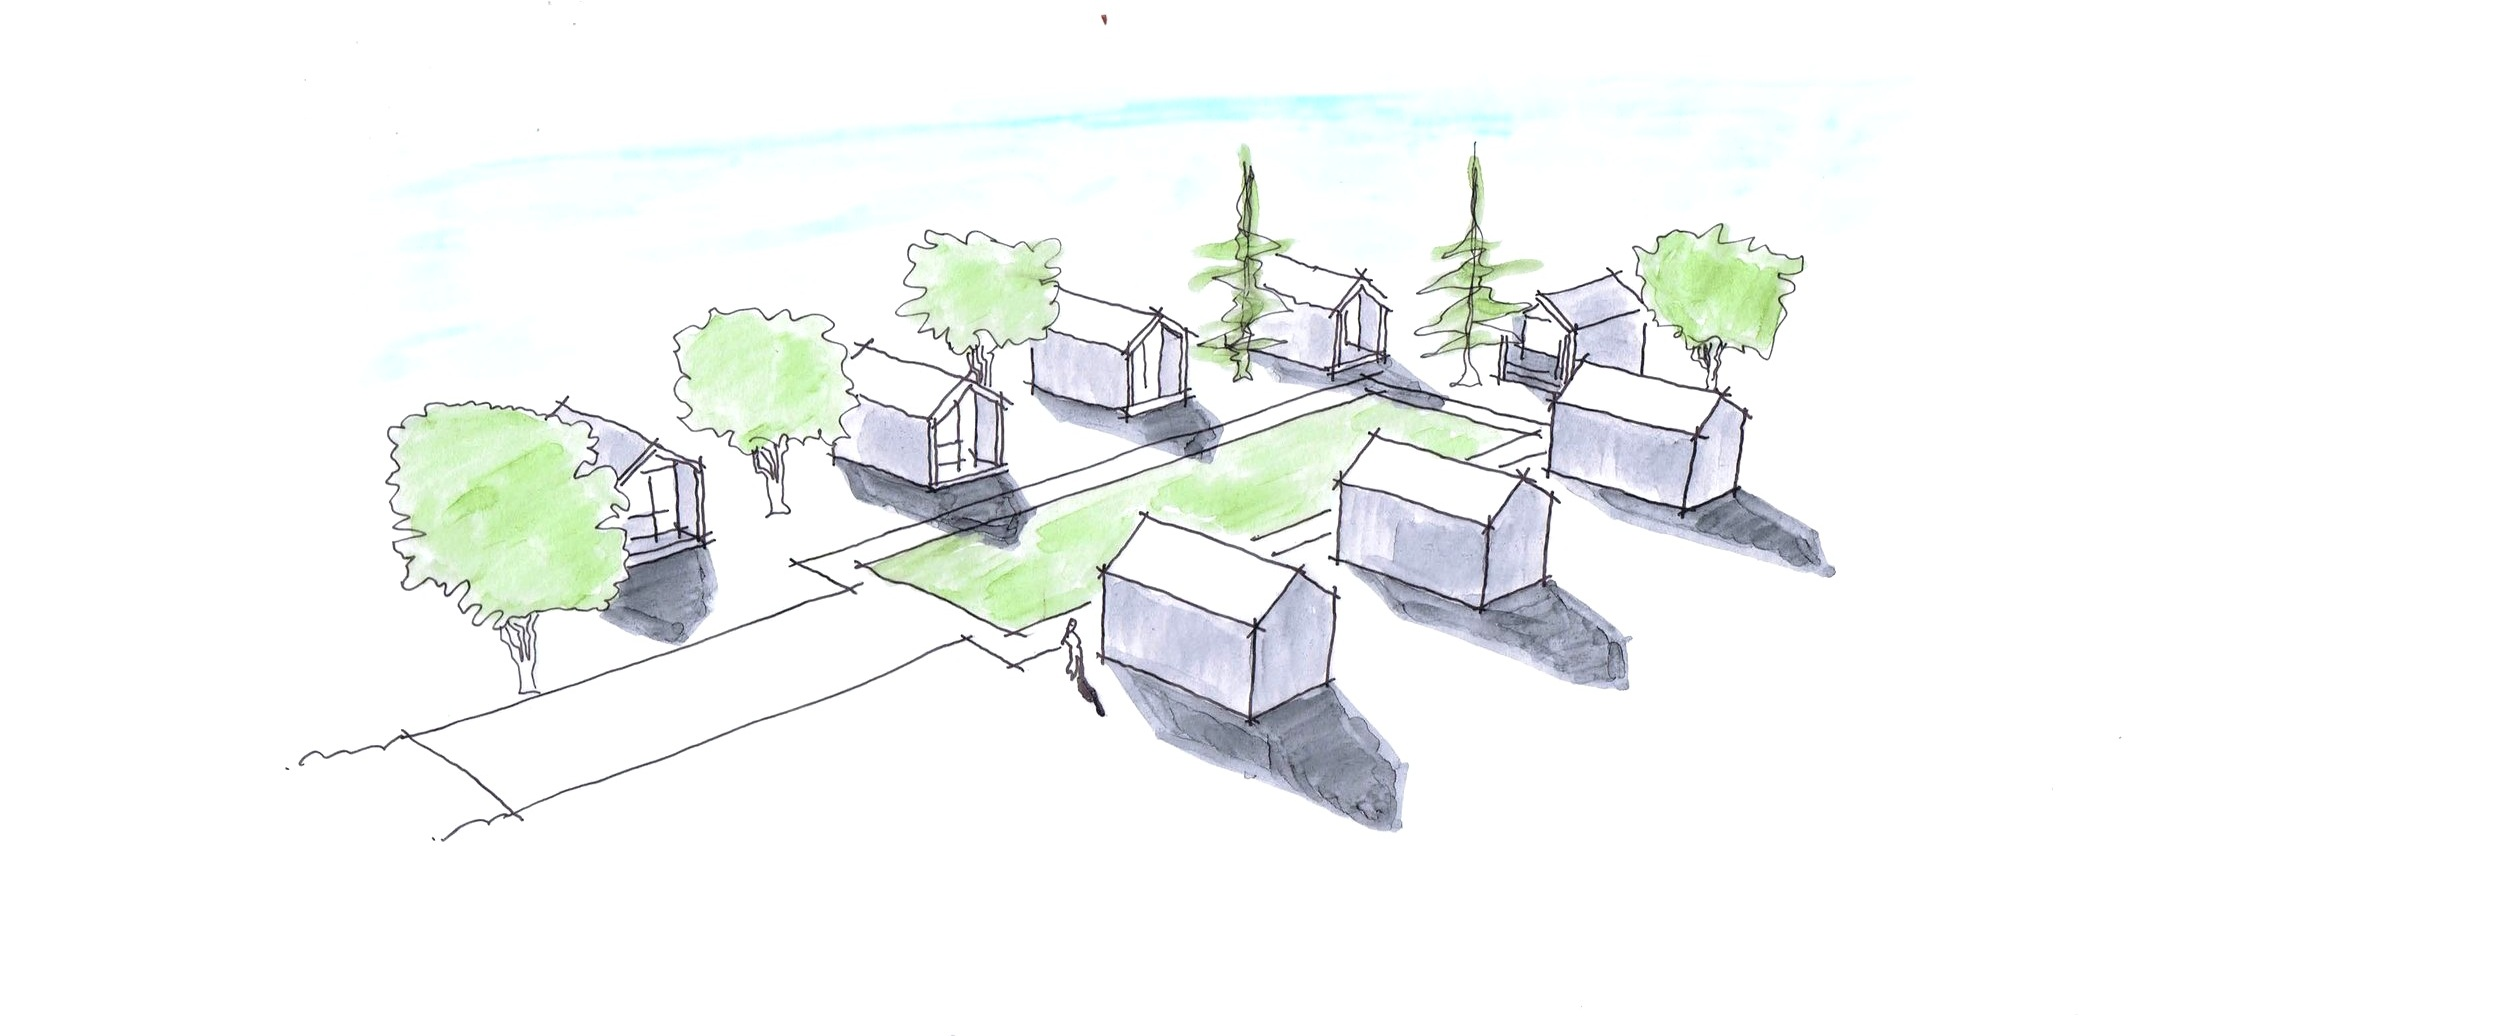 TINY HOME VILLAGE CONCEPT - The purpose of this project was to investigate potential options for providing emergency housing on Tr'ondek Hwech'in Settlement Land parcel R-20A.